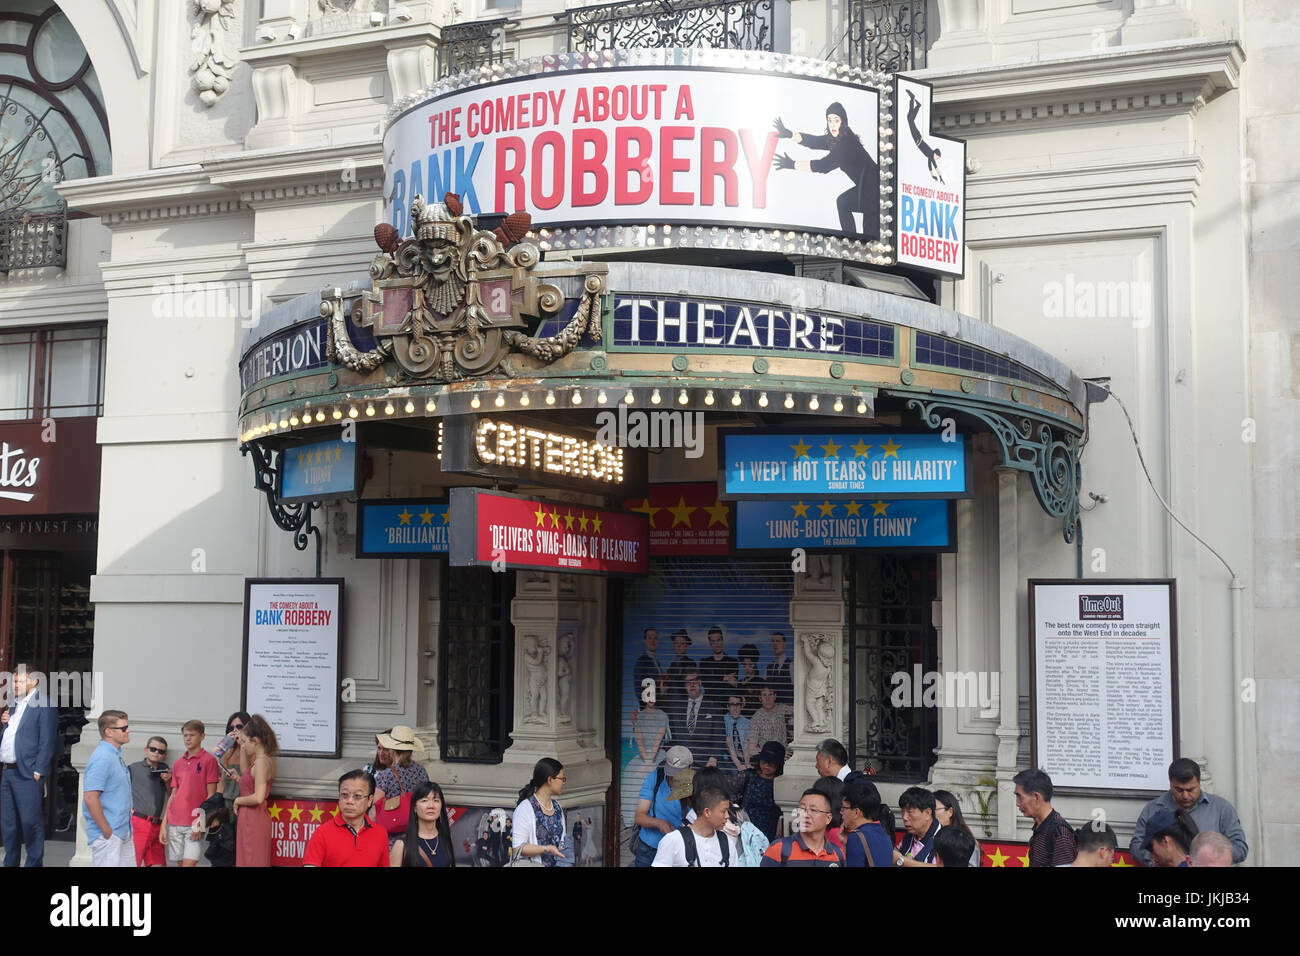 Front view of the entrance to the Criterion Theatre in Piccadilly Circus London UK - Stock Image